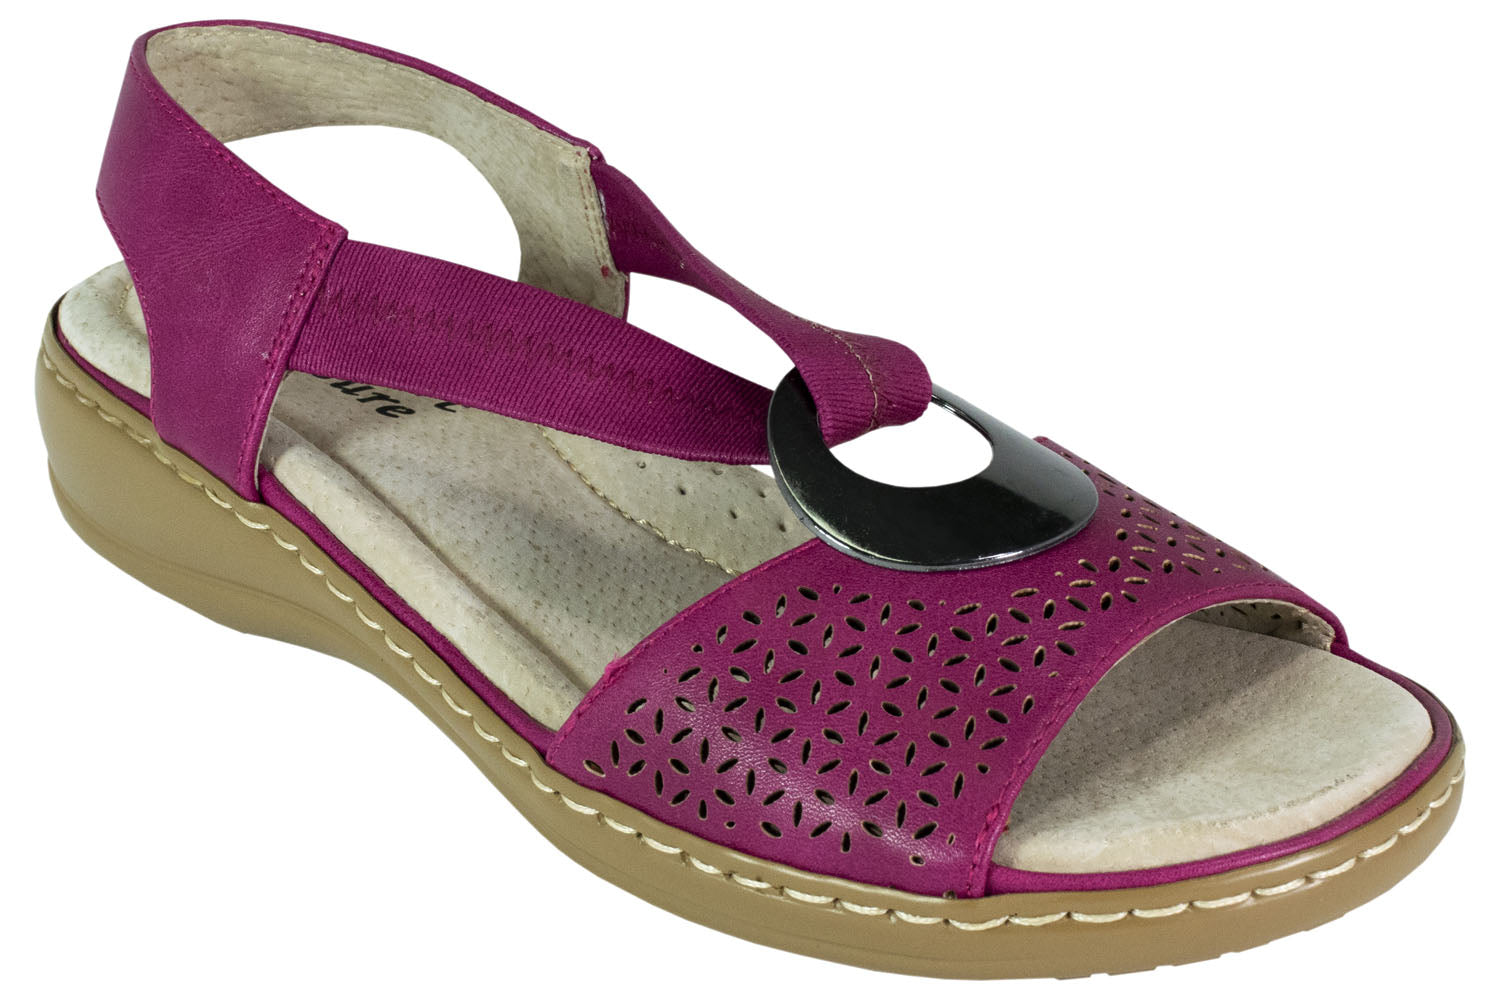 Comfort Leisure - Lynn - Comfort Sandal - Fuchsia - Sole Sister Shoes